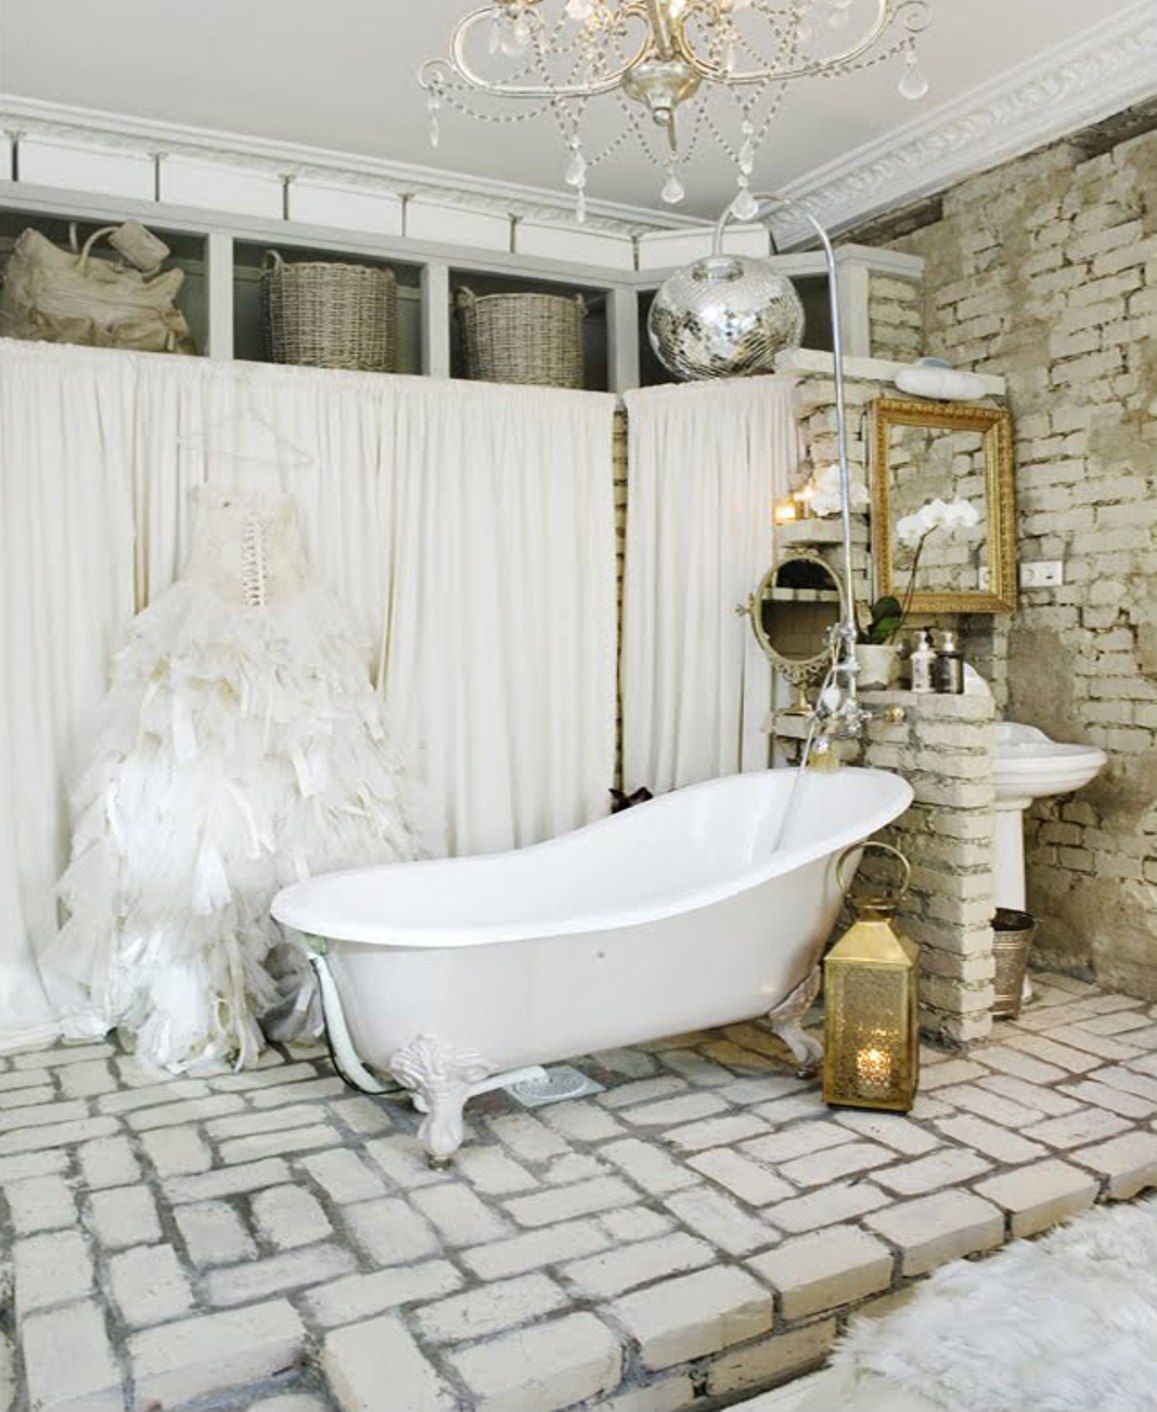 vintage-bathroom-theme-idea-with-brick-wall-and-floor-and-clawfoot-tub-and-crystal-chandelier-and-white-curtains-and-baskets